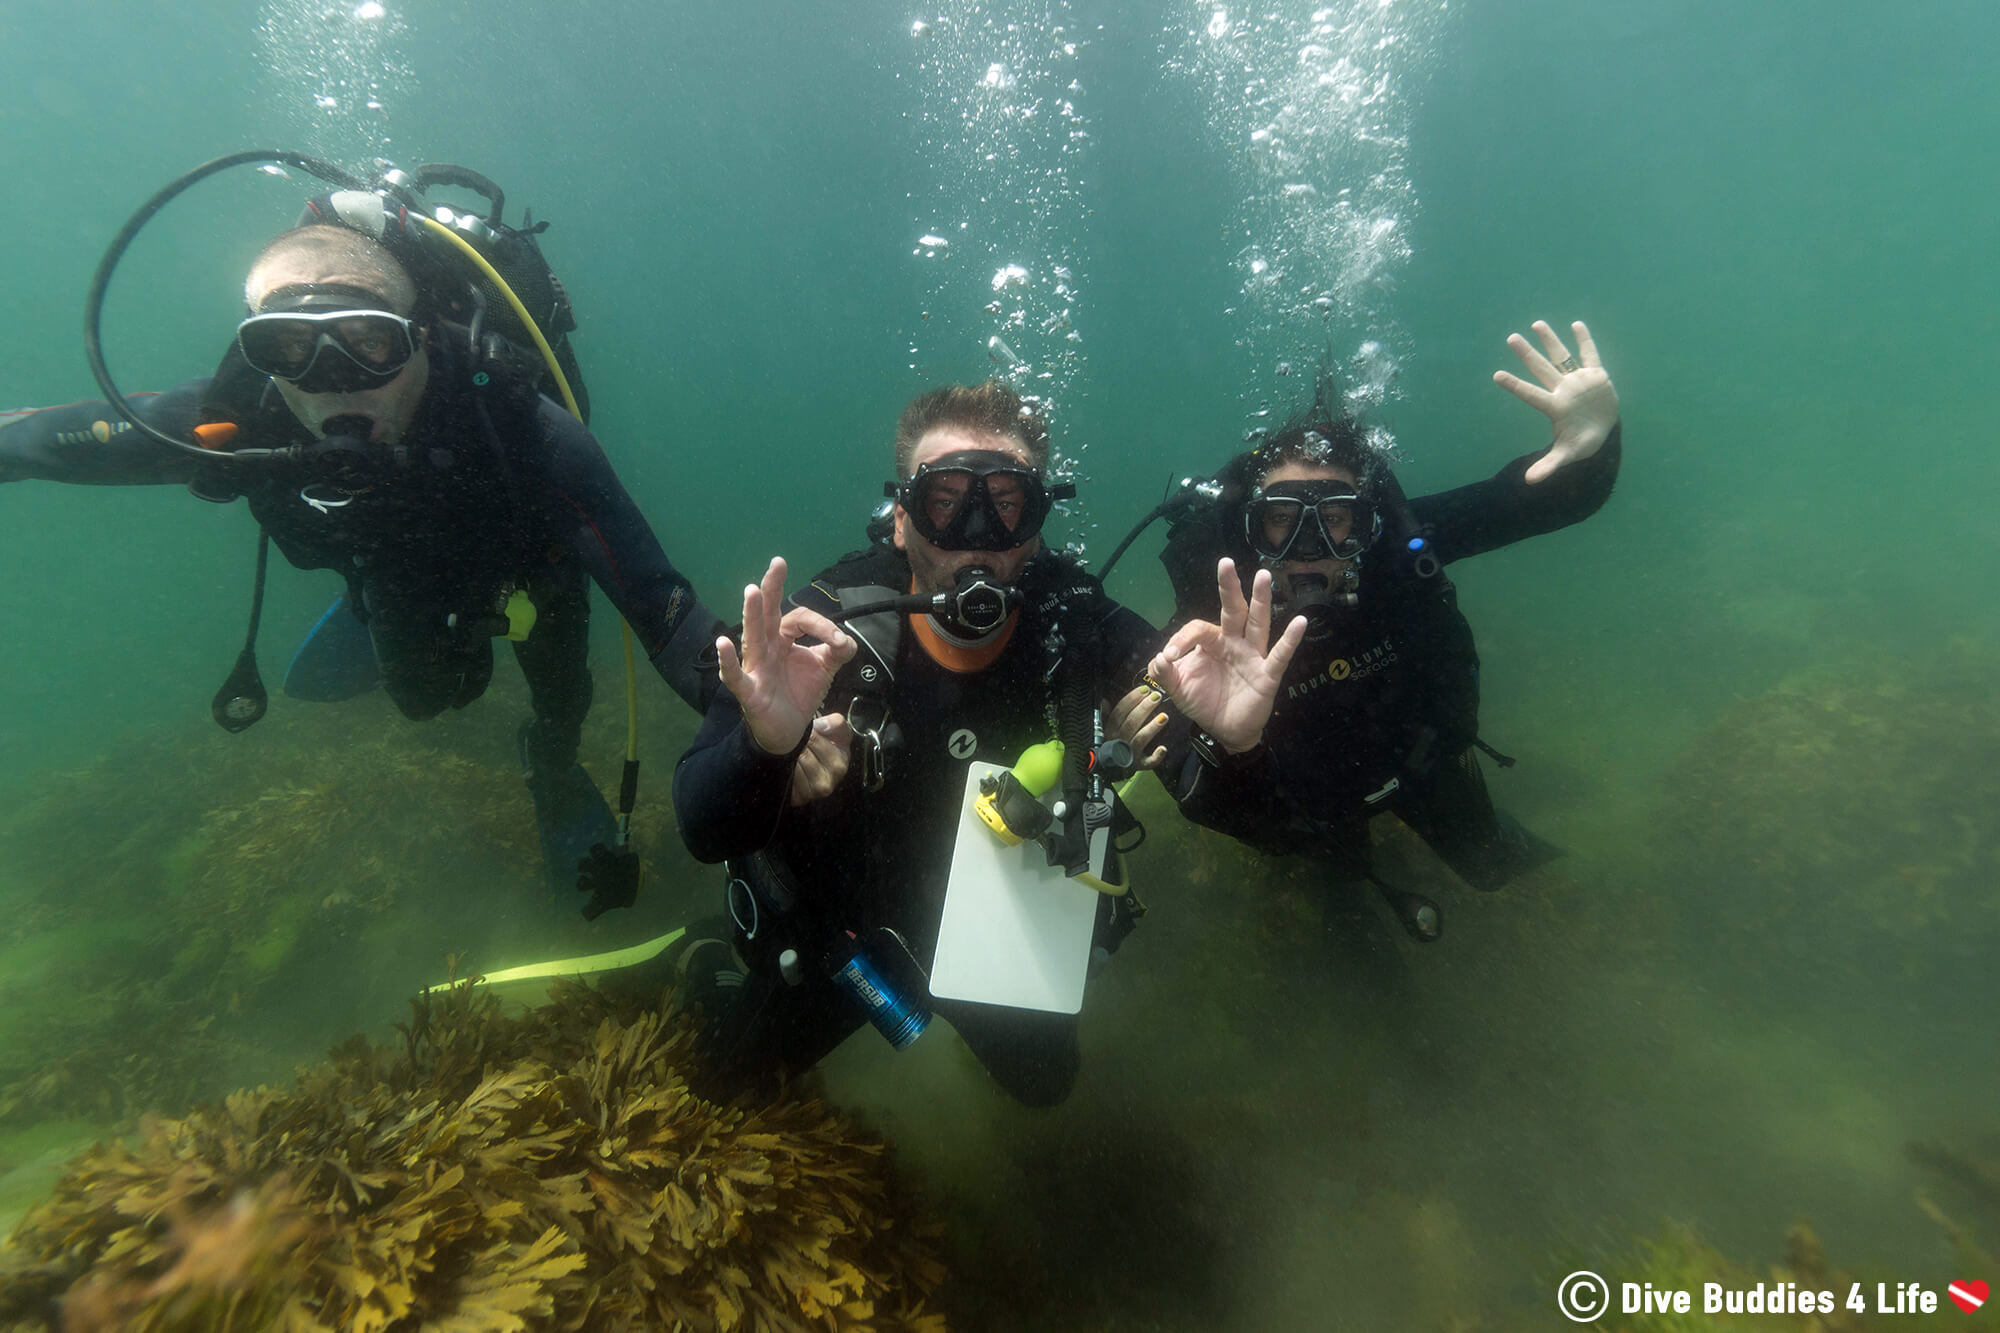 Carnac Underwater Scuba Diving Wedding Proposal in Brittany, France